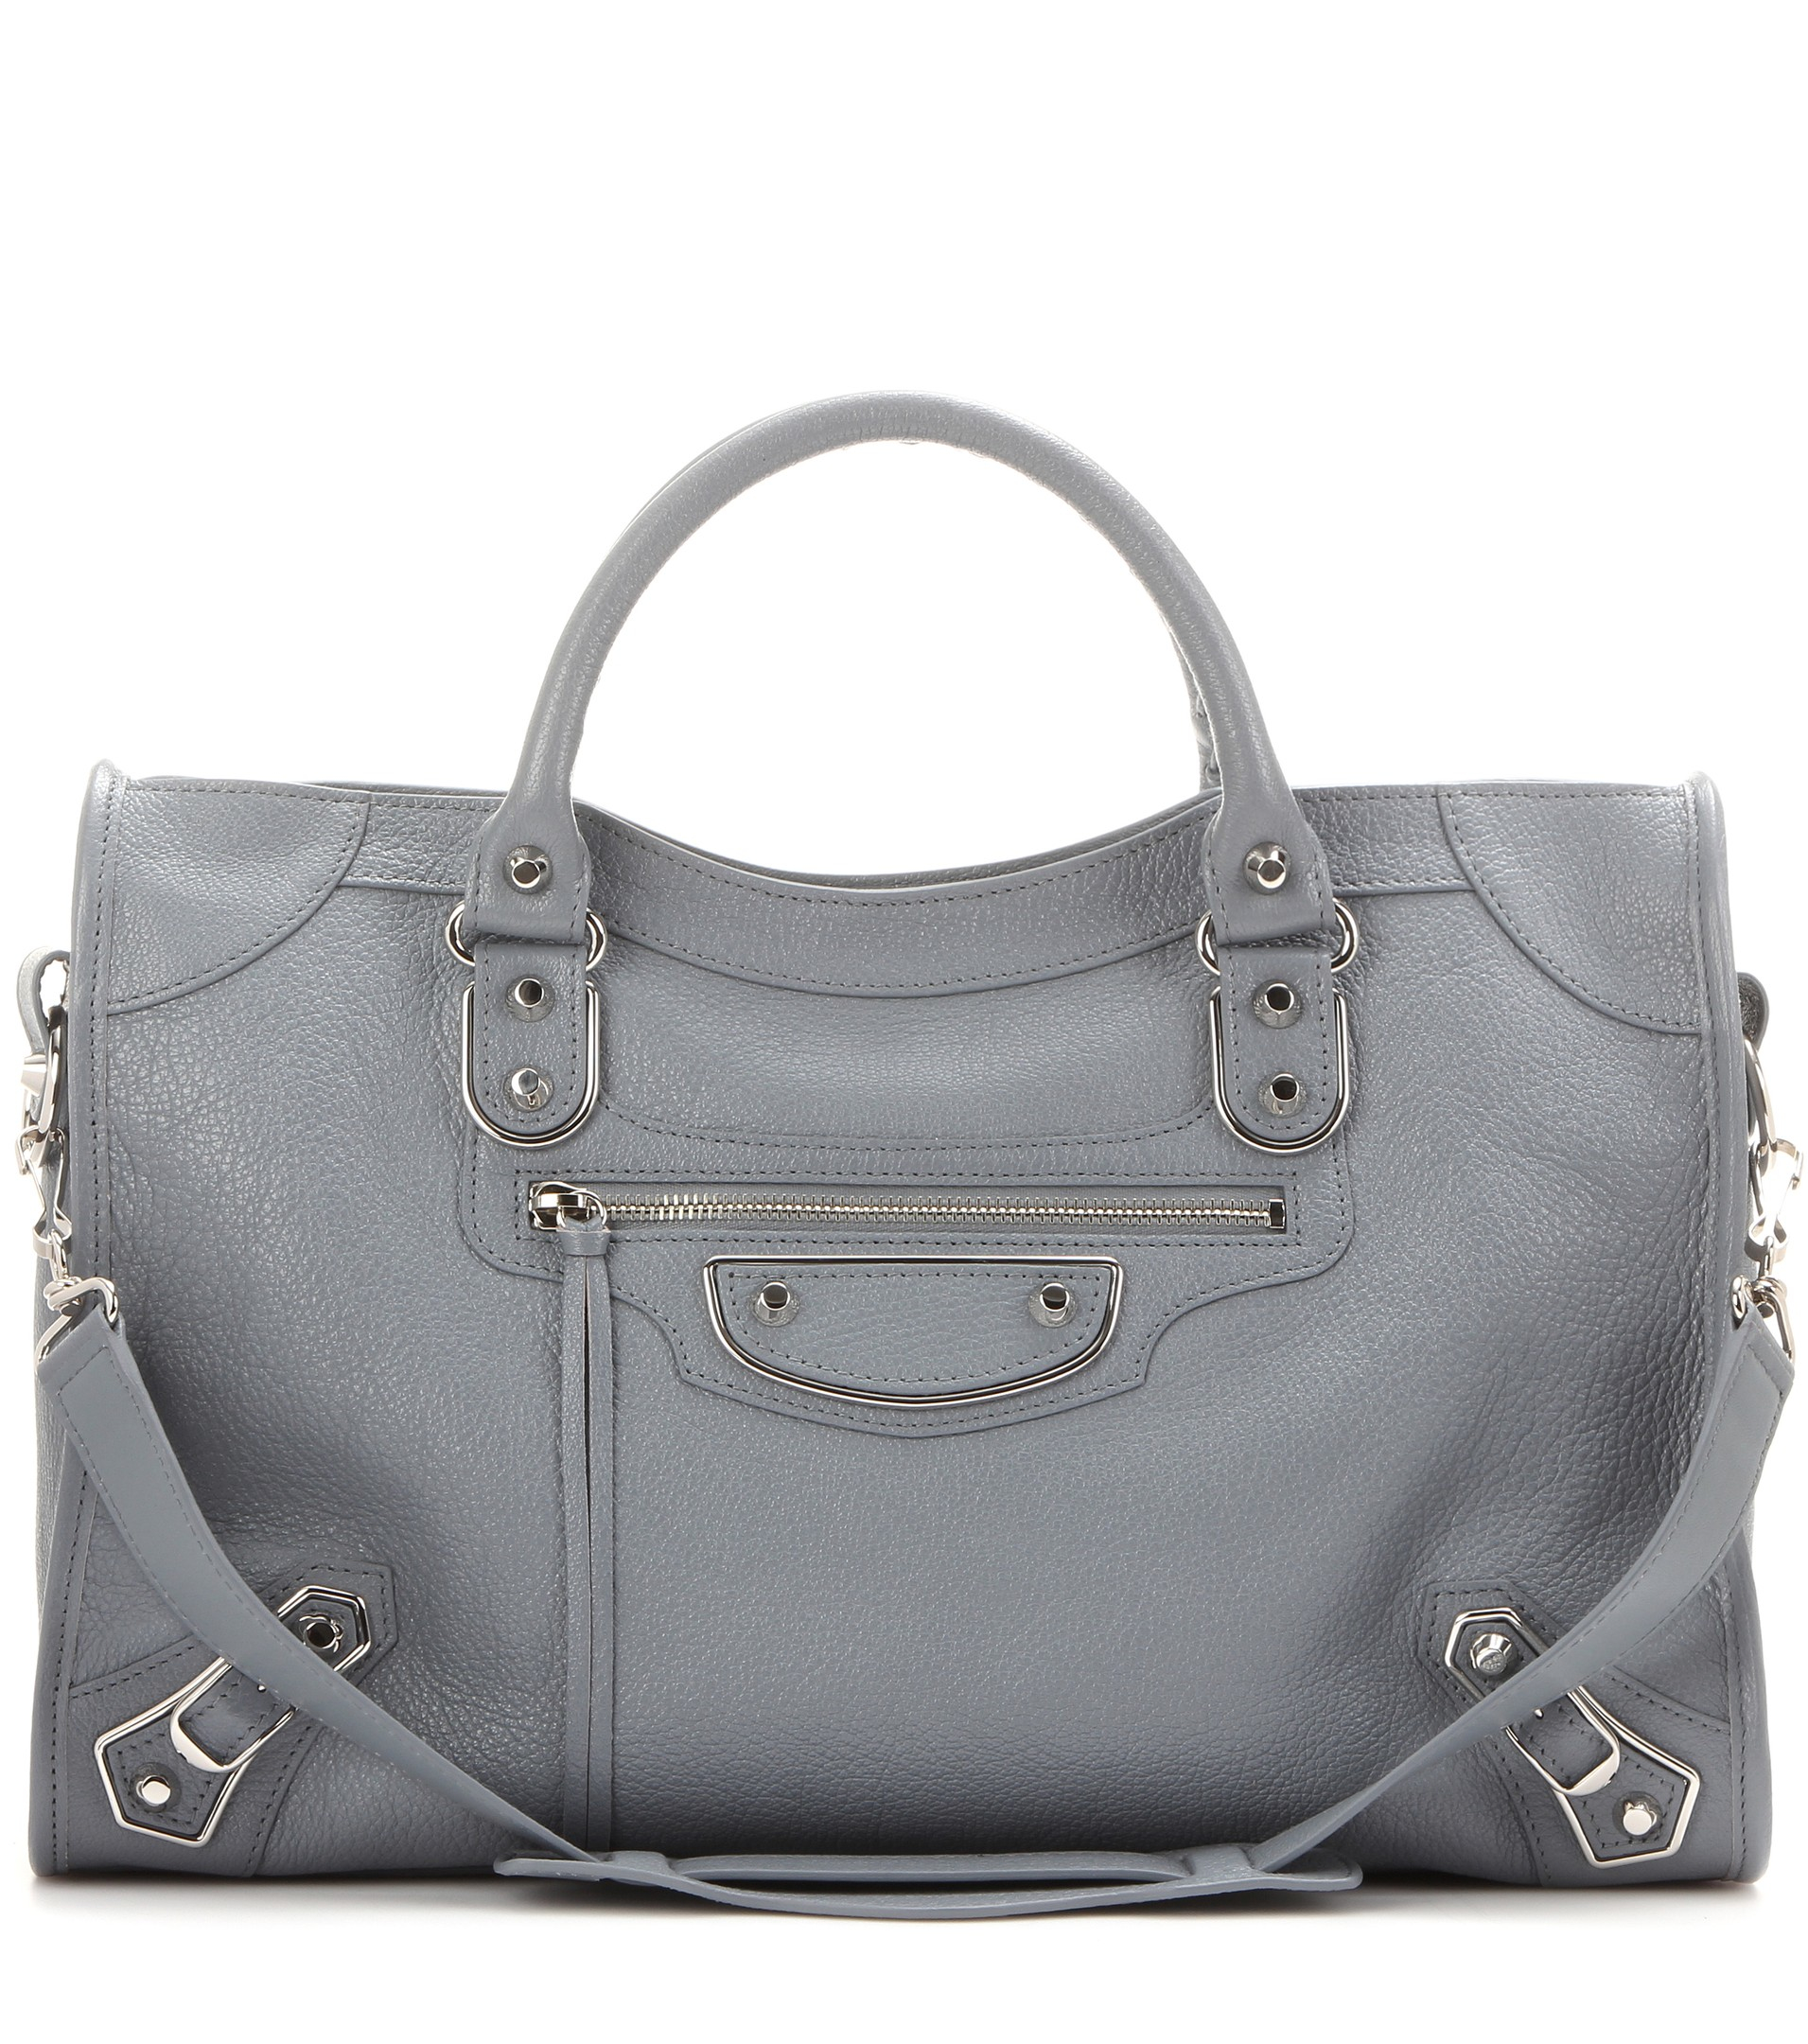 chloe messenger bag marcie - balenciaga metallic edge city small textured-leather shoulder bag ...